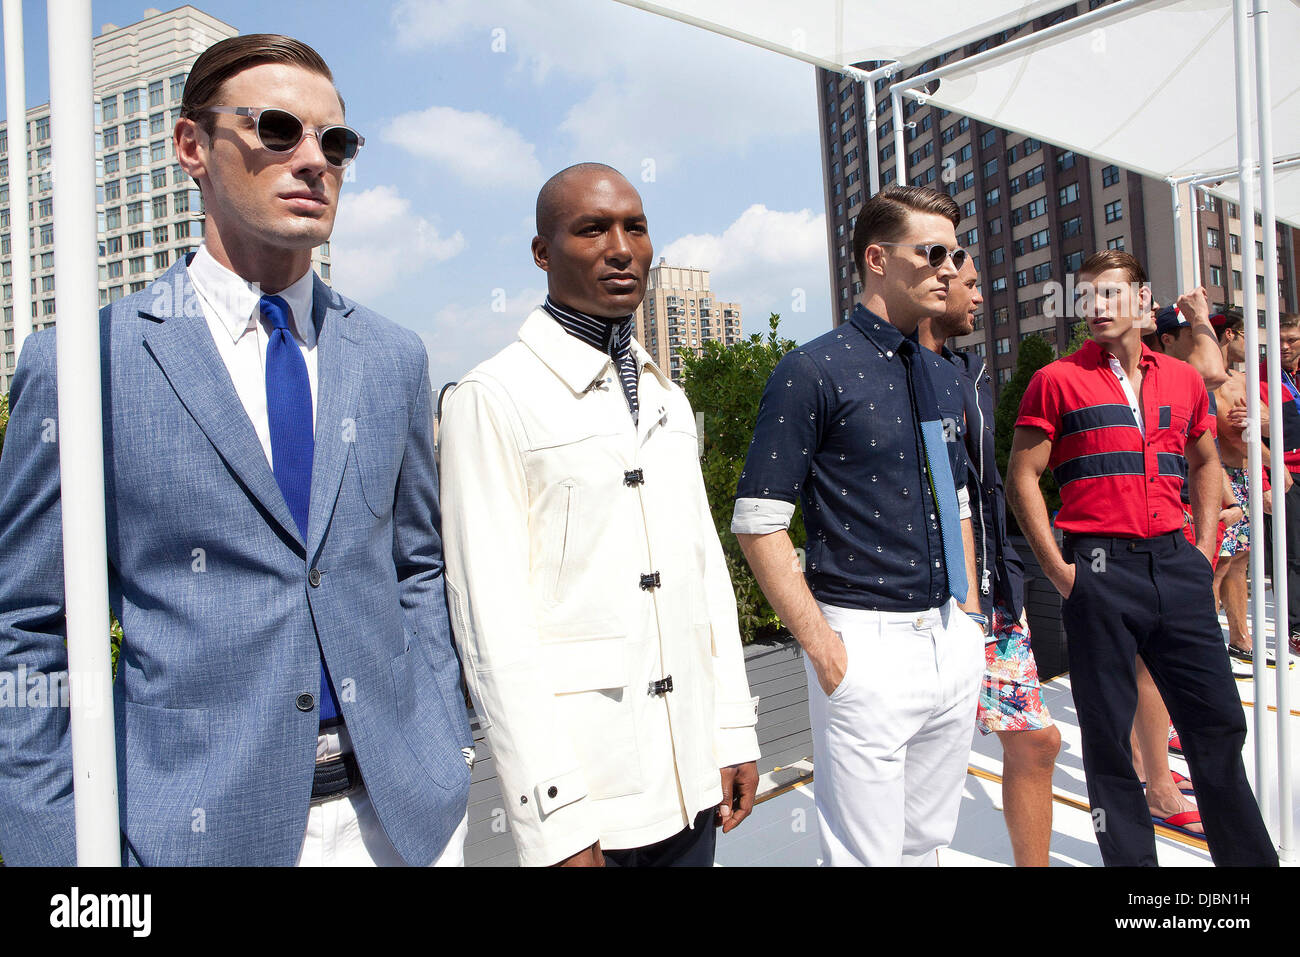 a1129c18bc8 Models Mercedes-Benz New York Fashion Week Spring Summer 2013 - Nautica -  Empire Hotel Rooftop - Presentation New York City